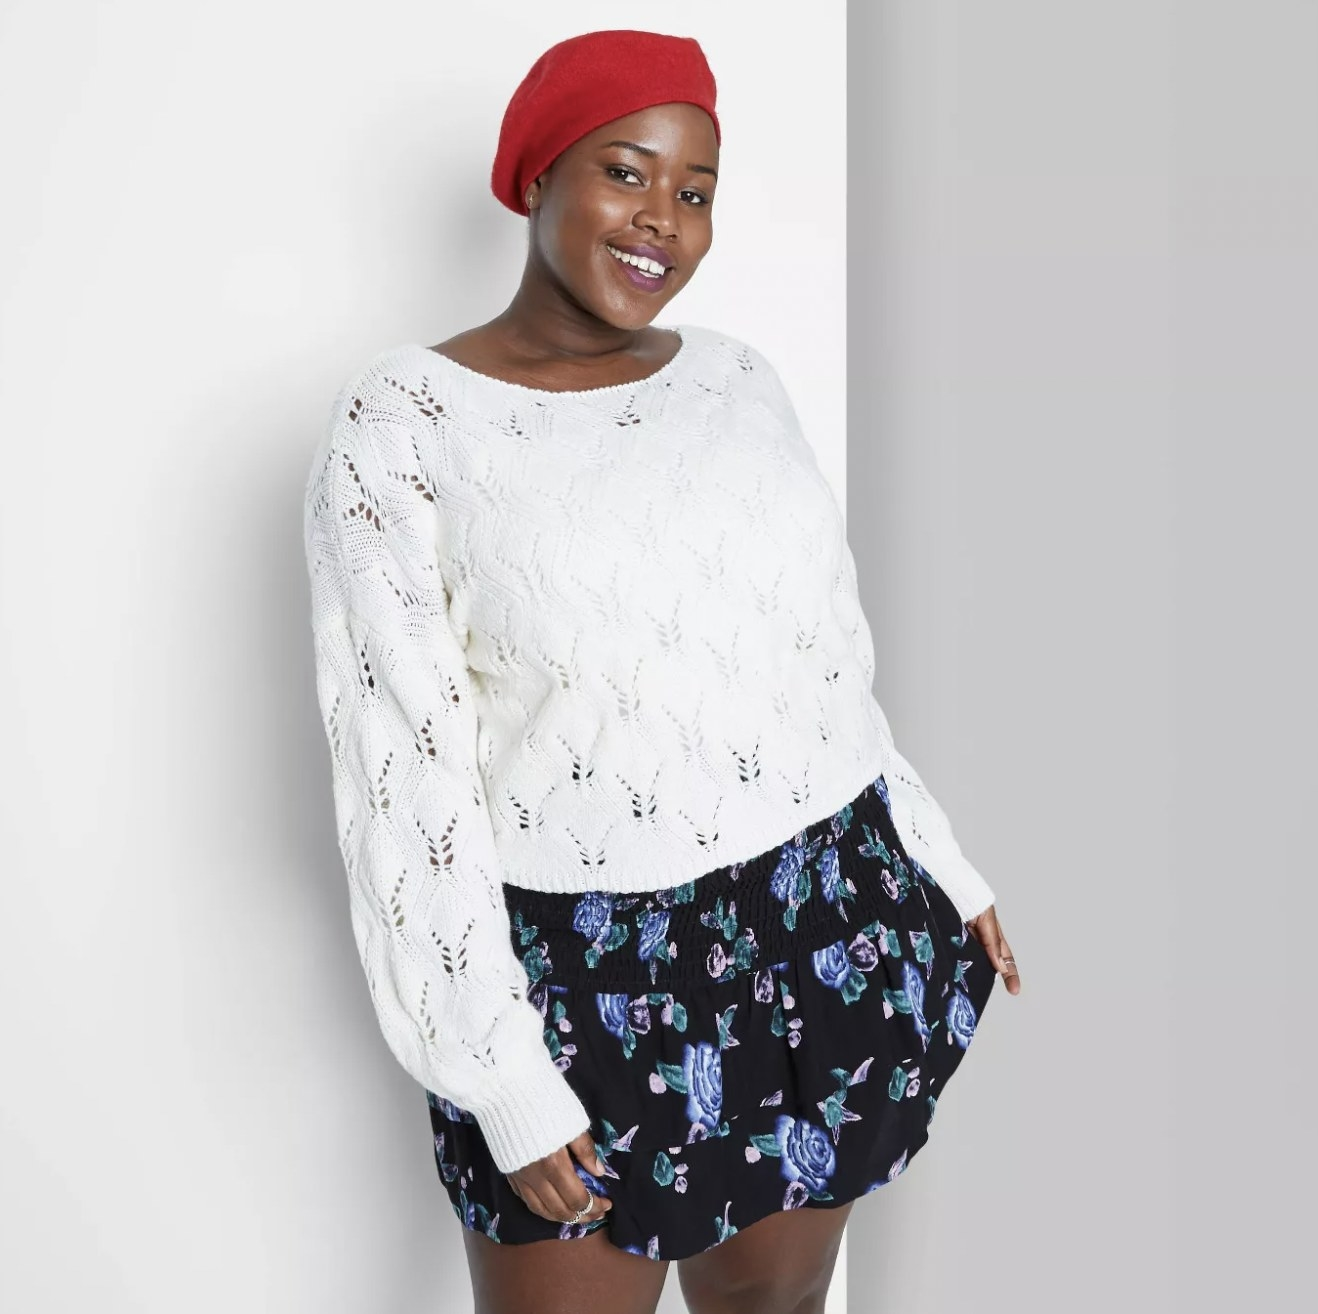 A model wearing a red hat, a white sweater, and a black skirt with purple flowers